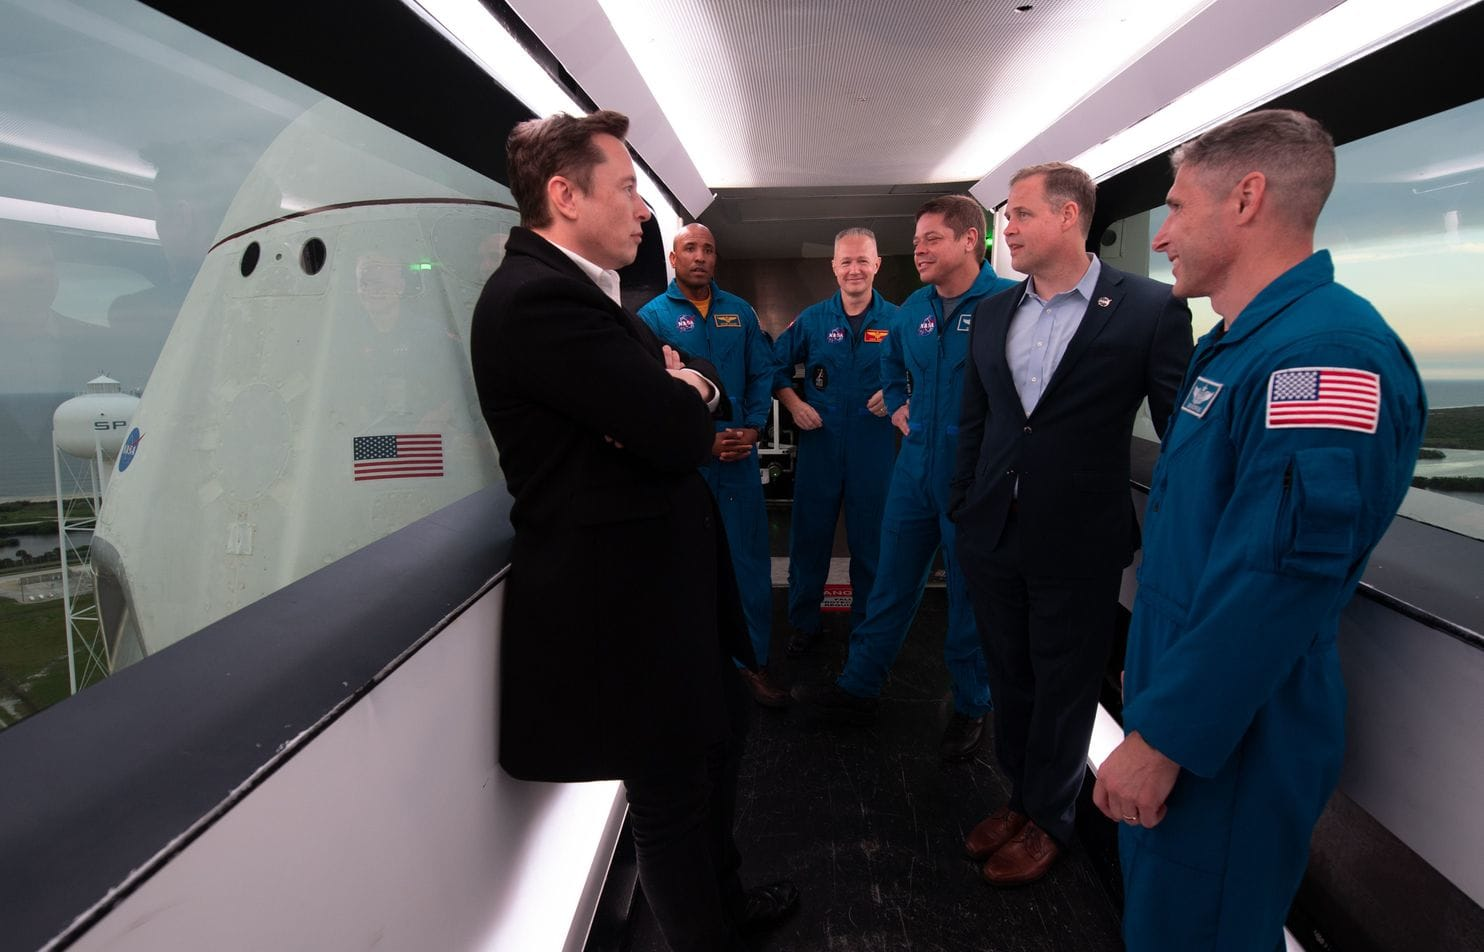 Elon Musk with Austronauts and NASA executives